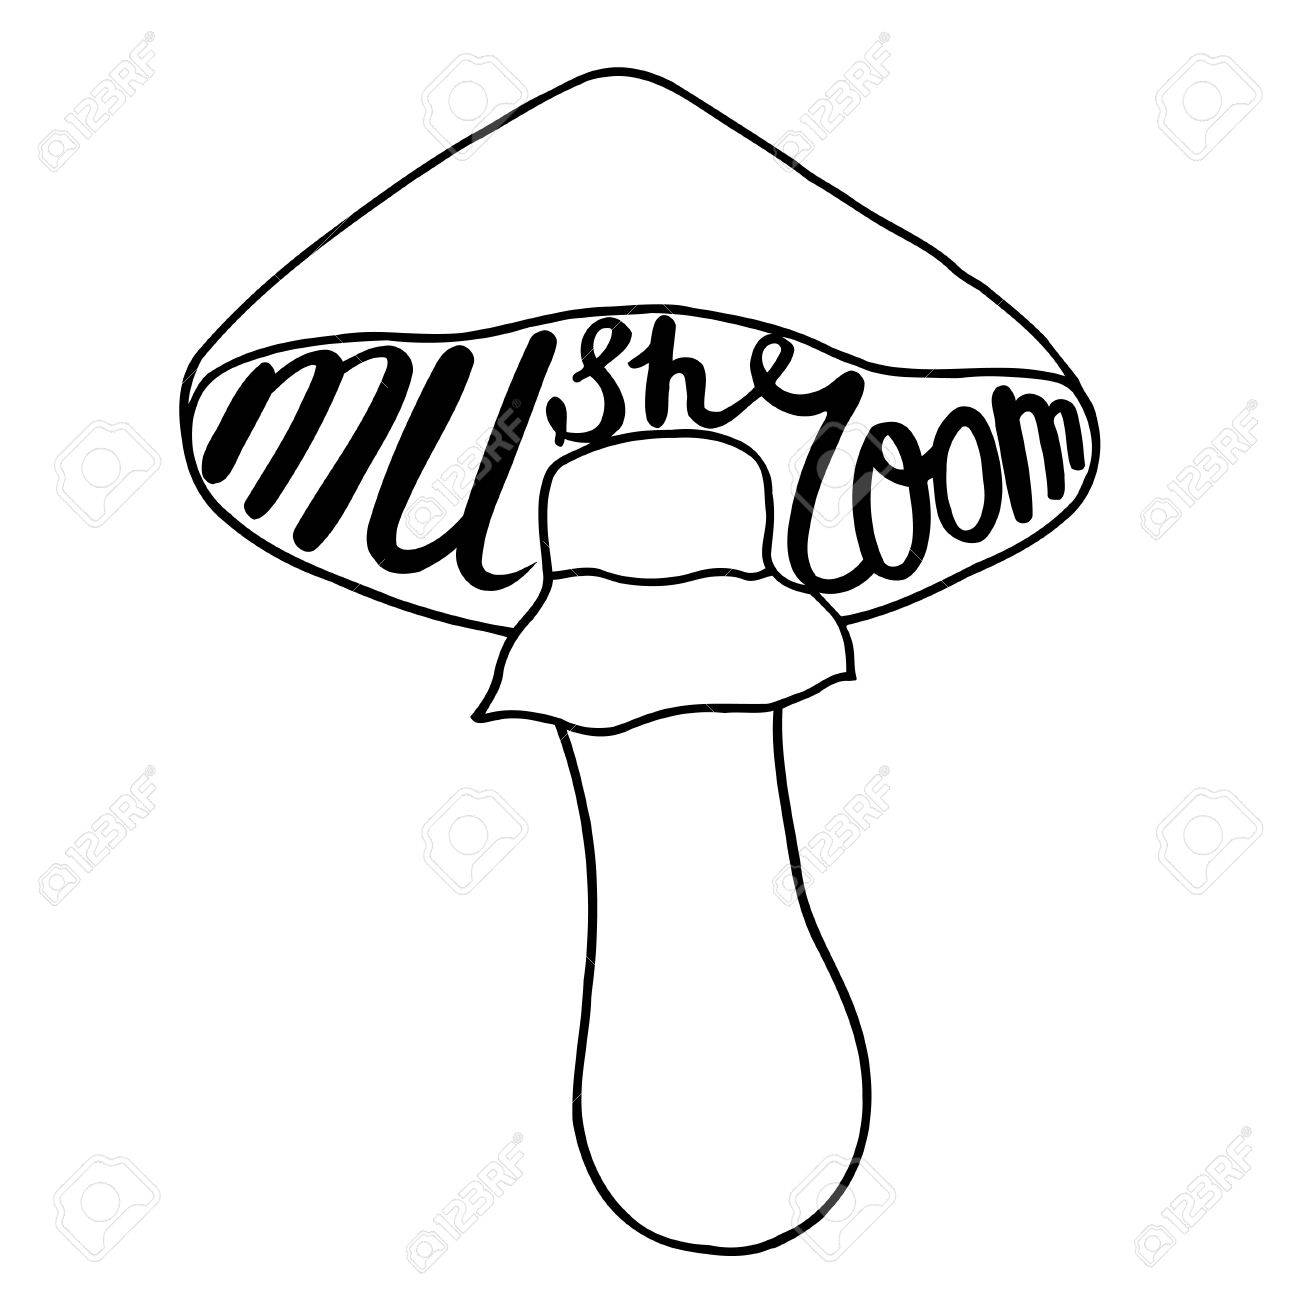 1300x1300 Mushroom Graphic Drawing Trace With Art Lettering. Vector